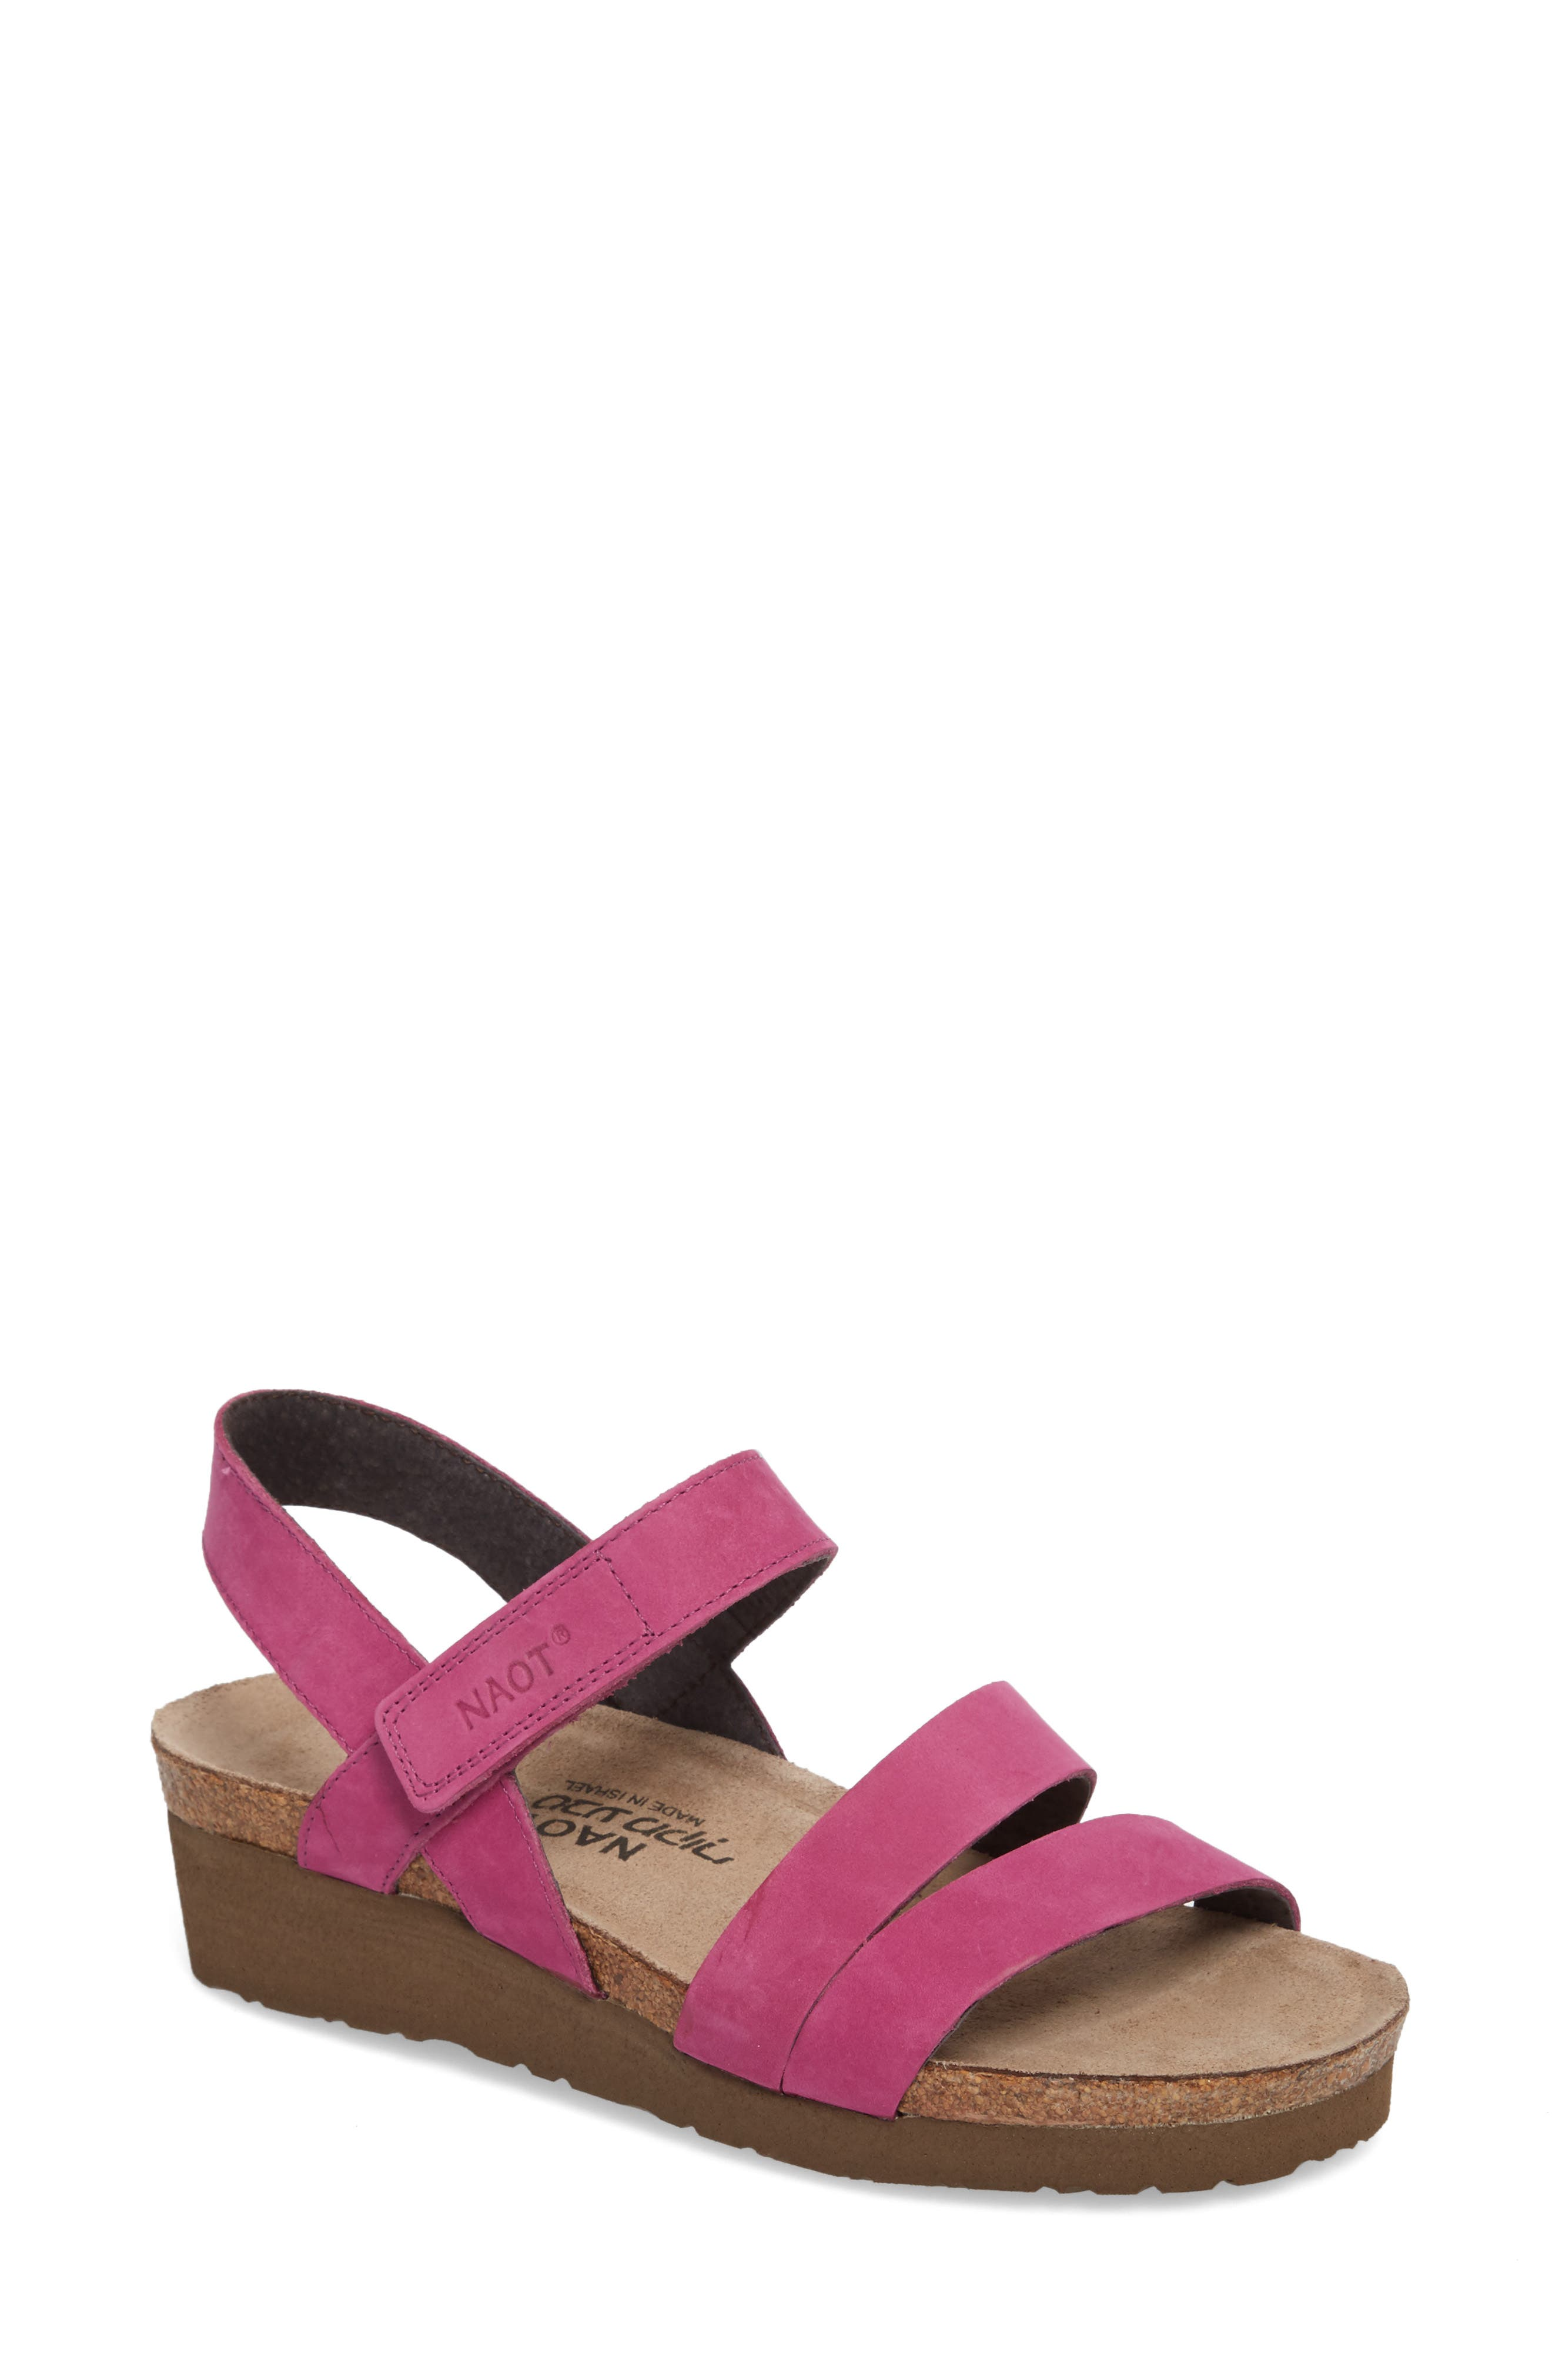 'Kayla' Sandal,                         Main,                         color, Pink Plum Nubuck